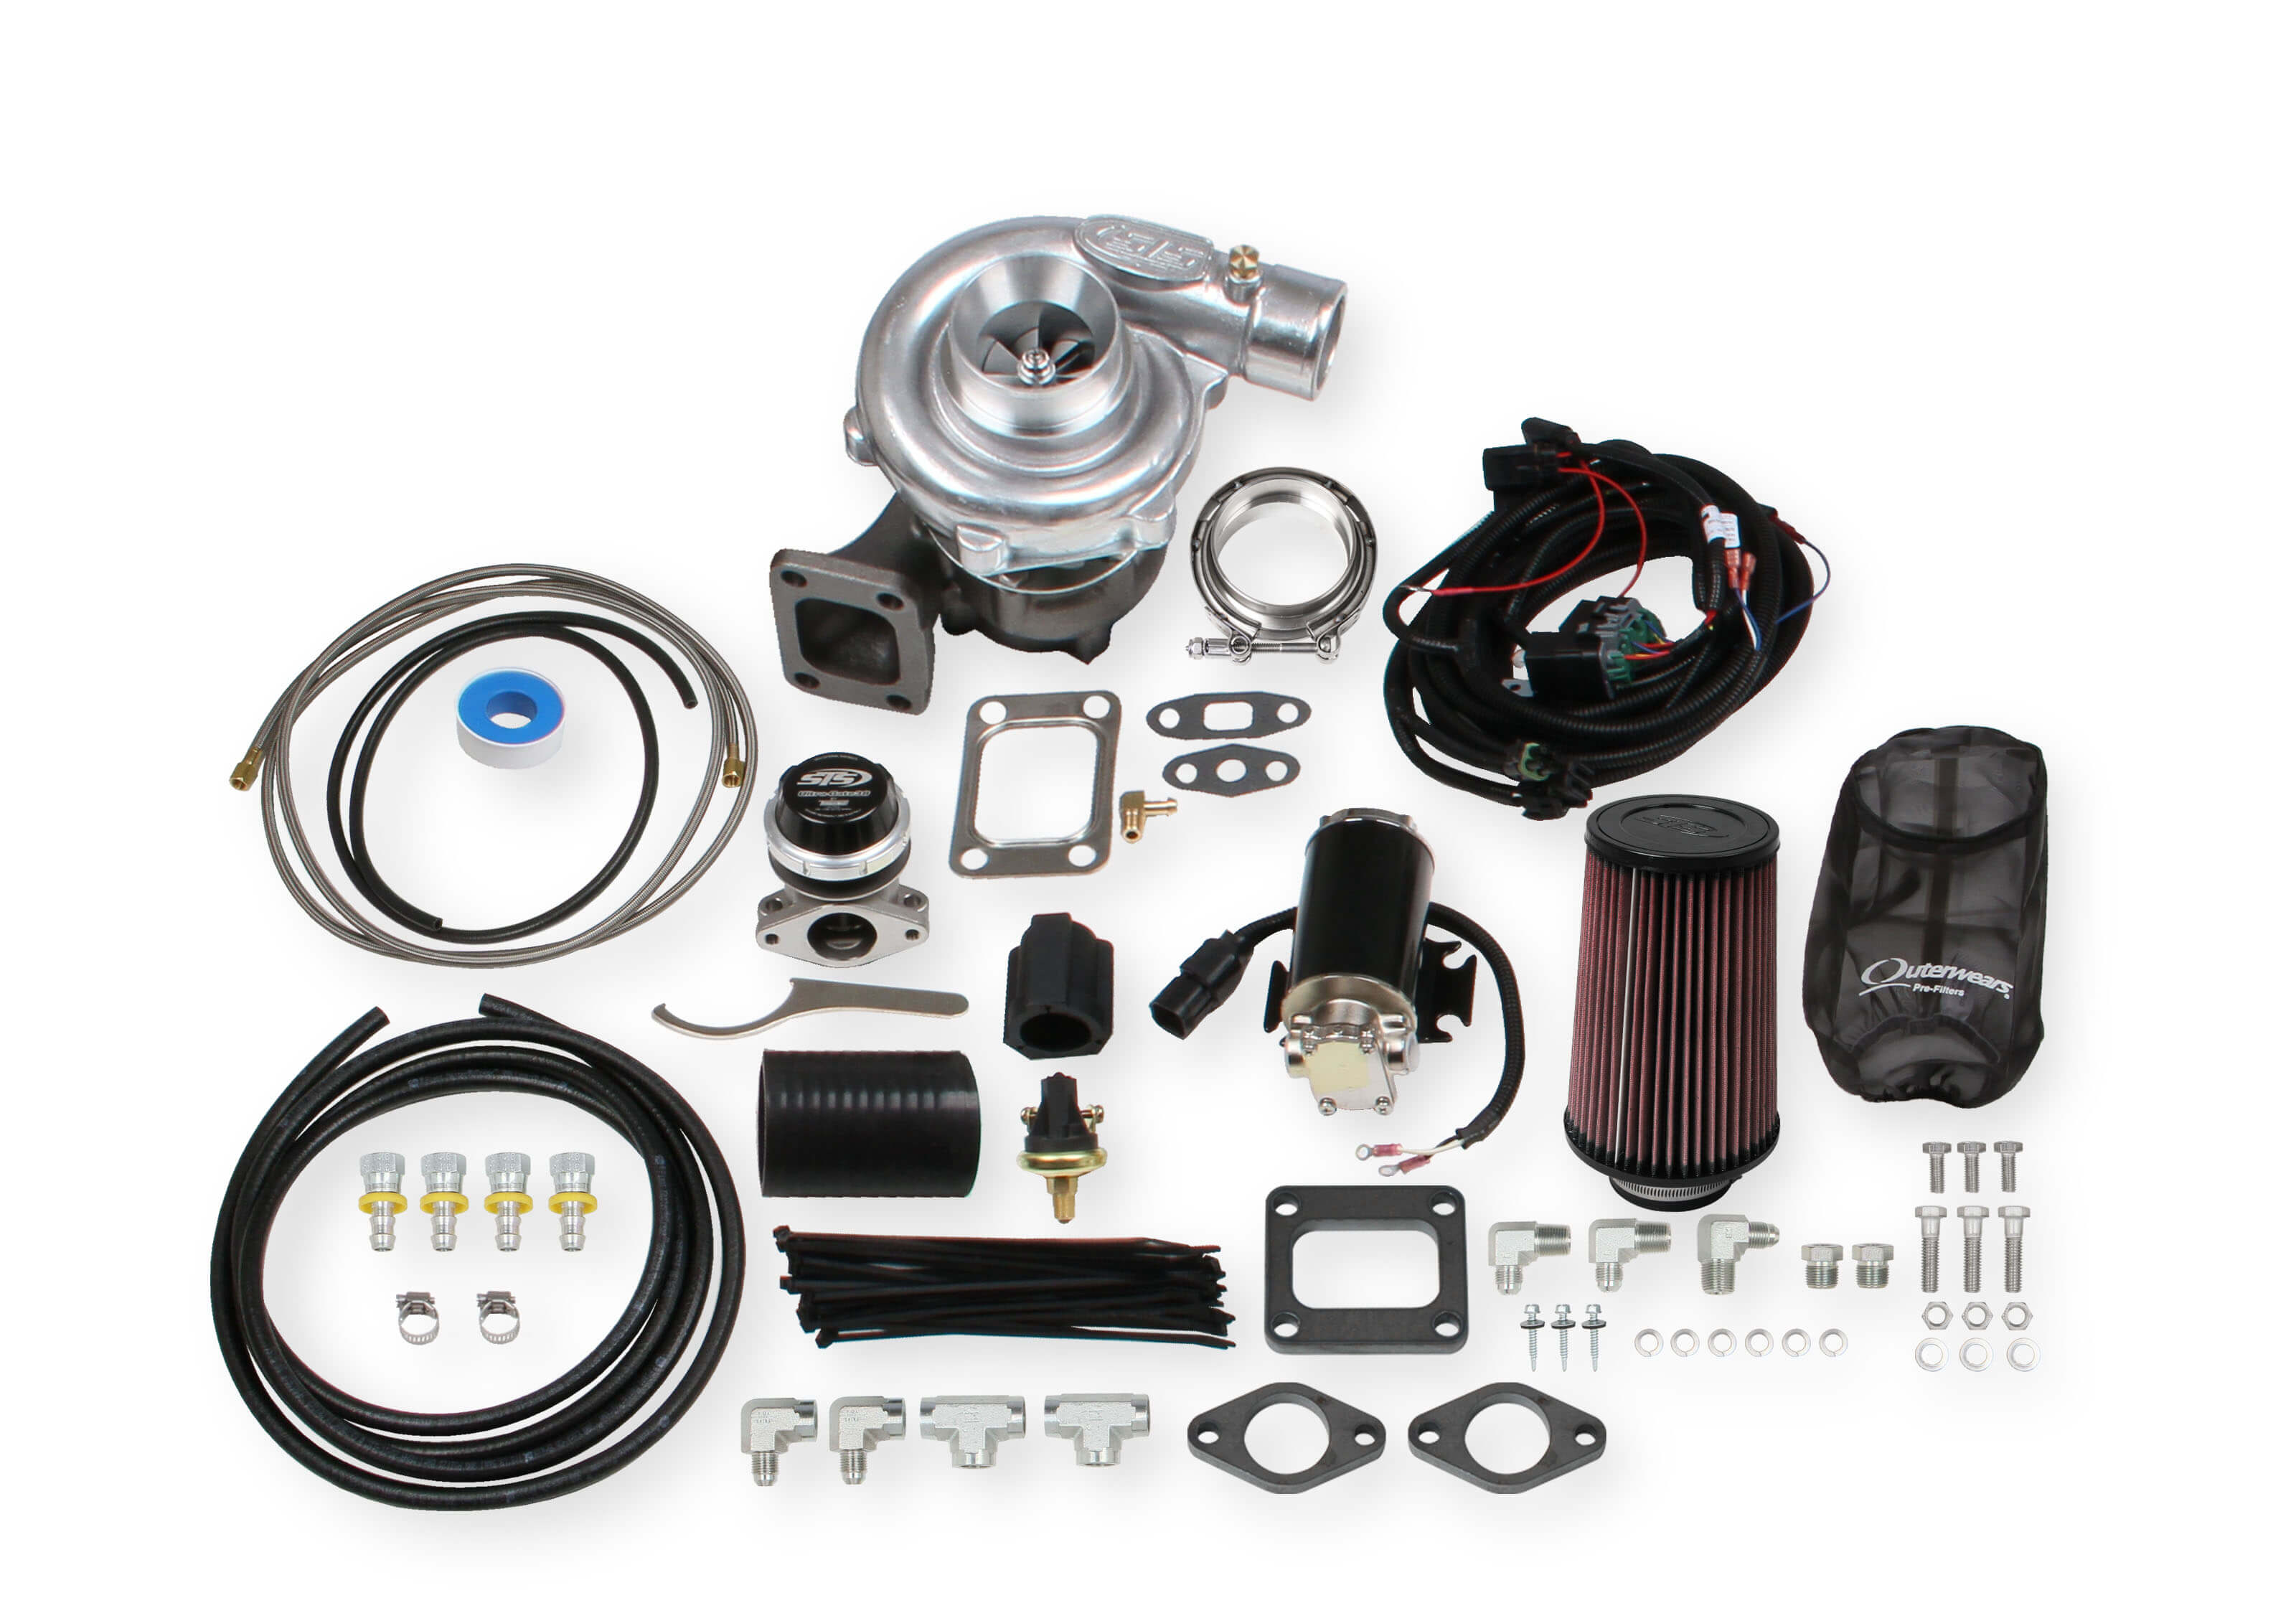 STS Turbo Remote Mounted Single Turbo Kit for 4.0-5.0 liter engines